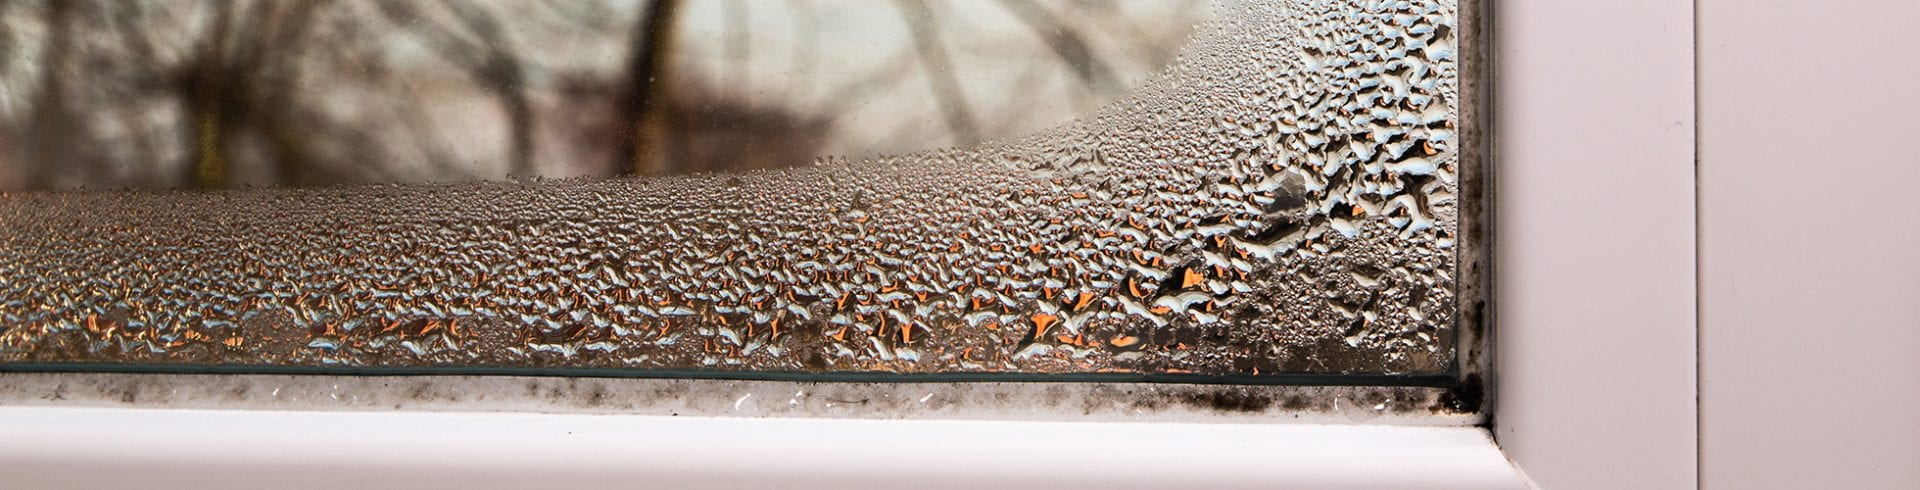 How Moisture Enters Buildings & Causes Mold | Blog | MoldOff®